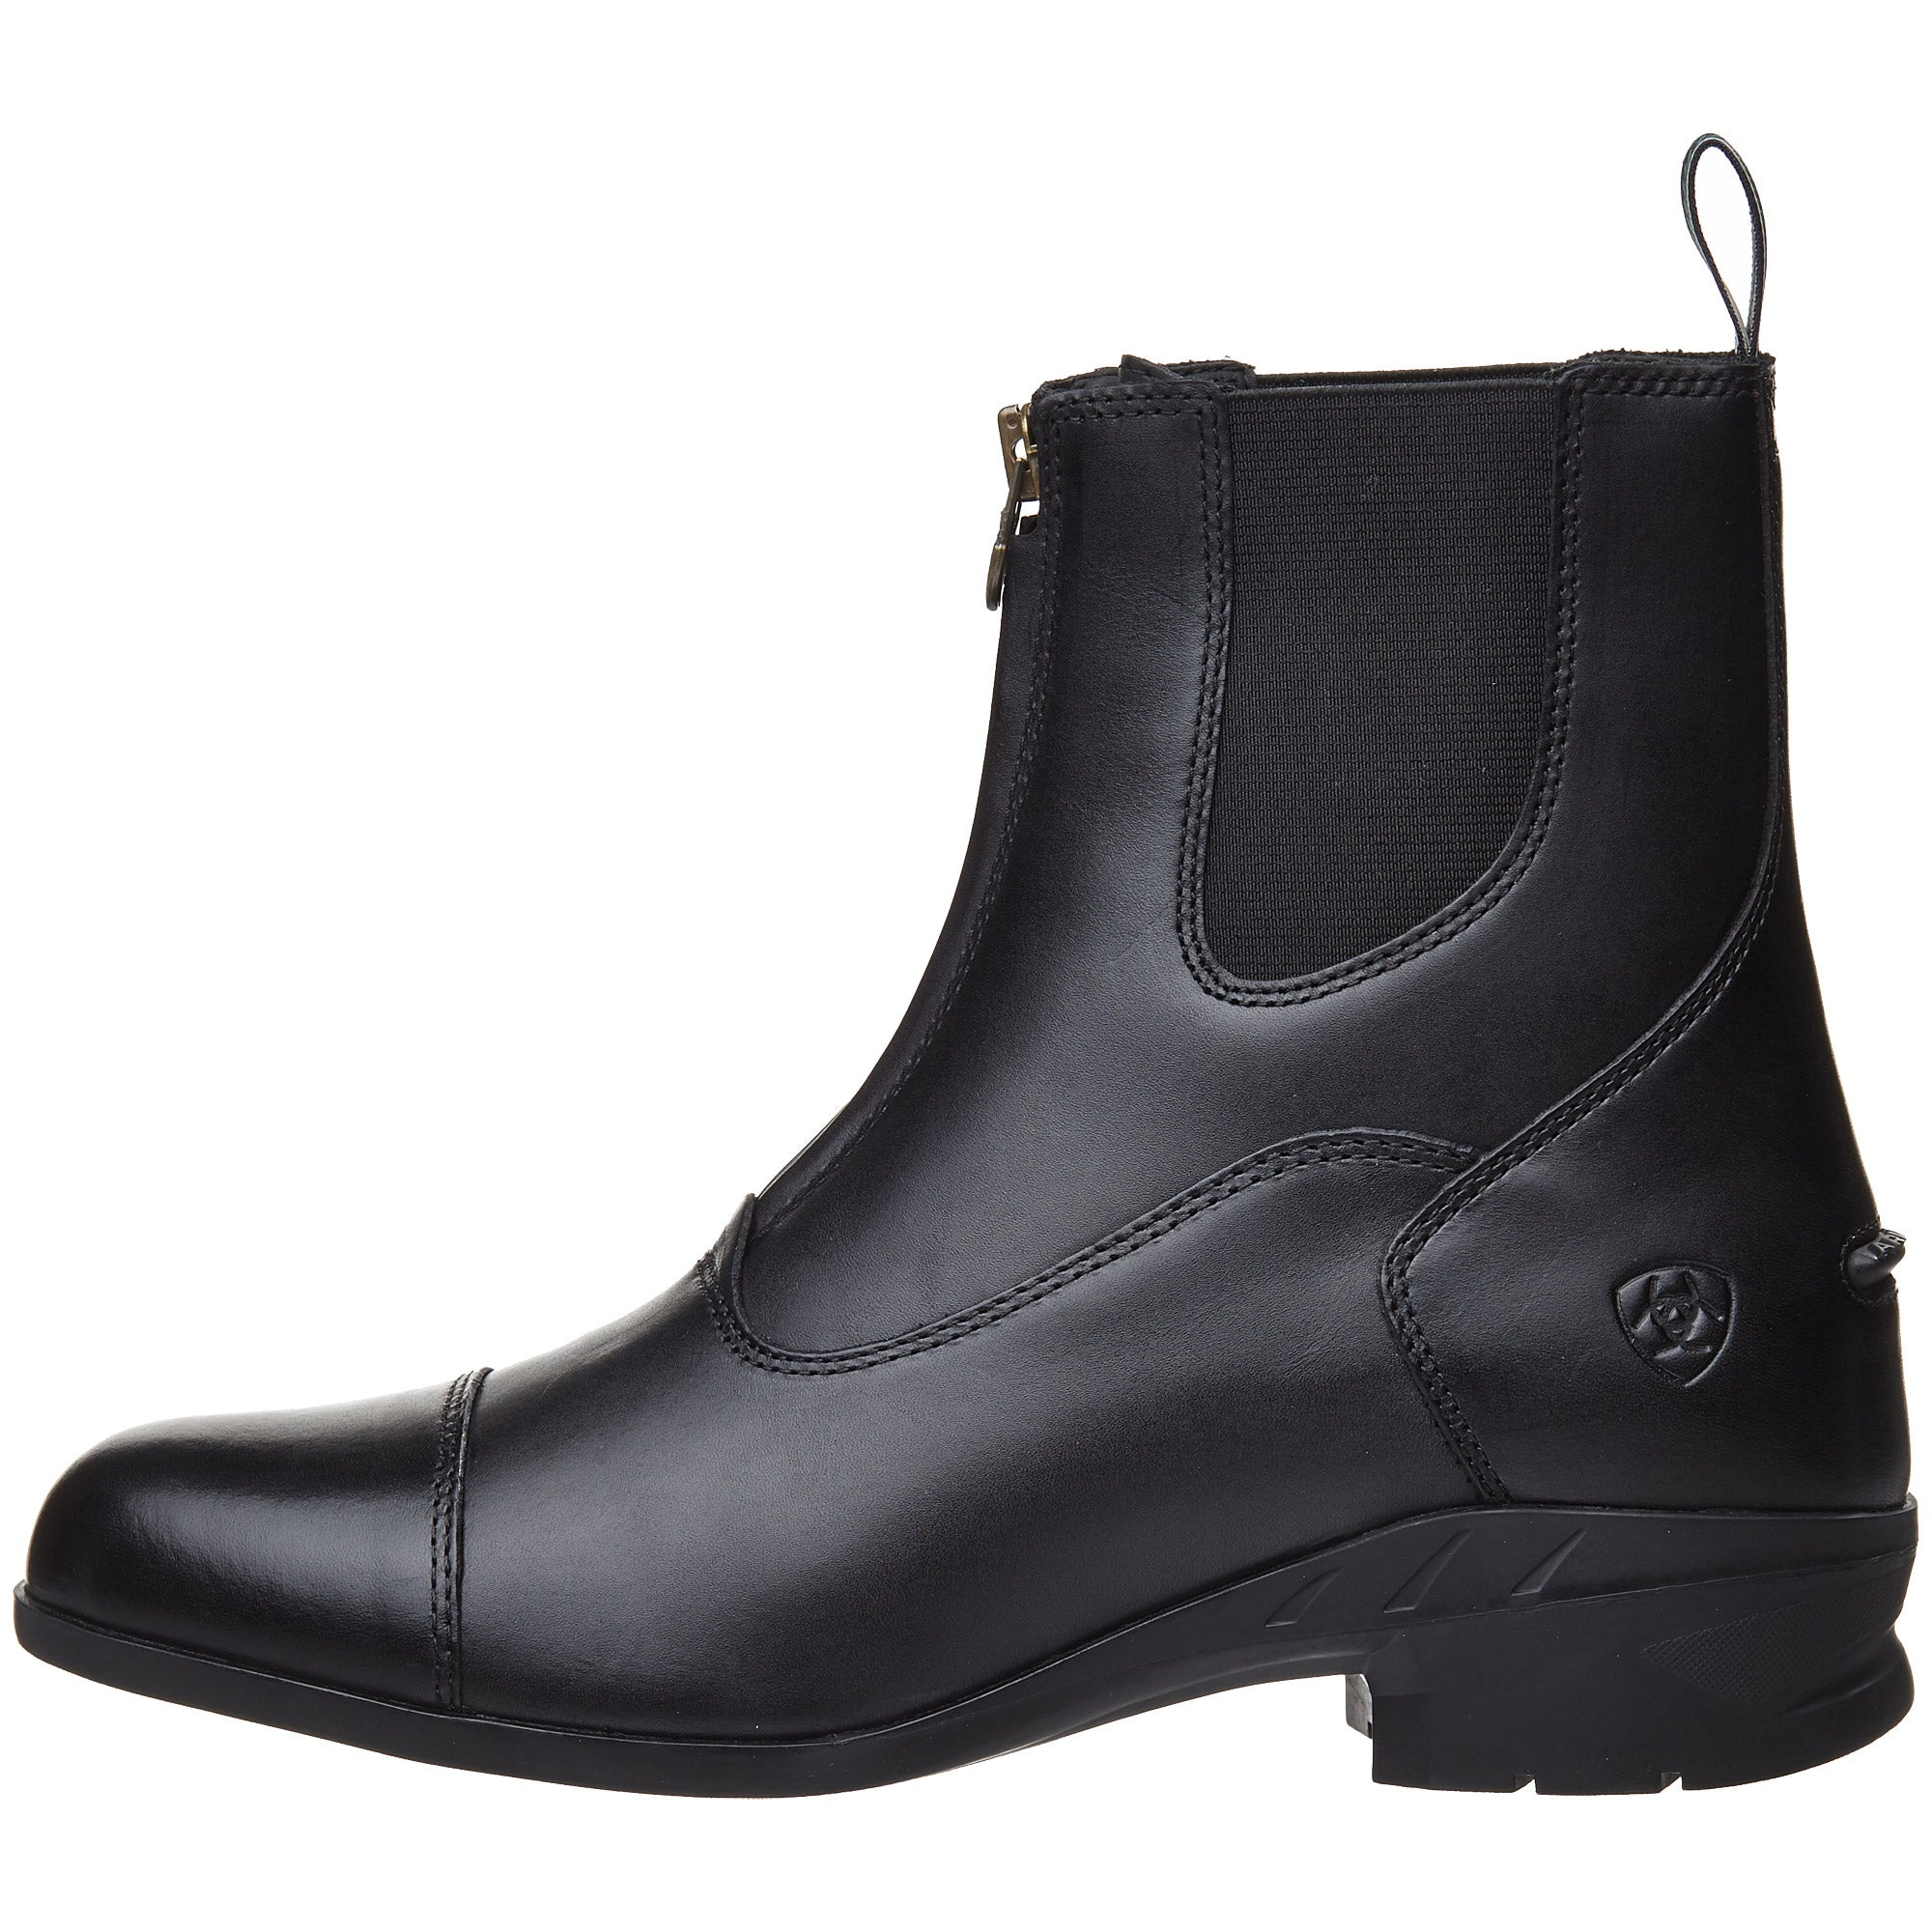 Ariat Men S Heritage Iv Zip Paddock Boots Black Riding